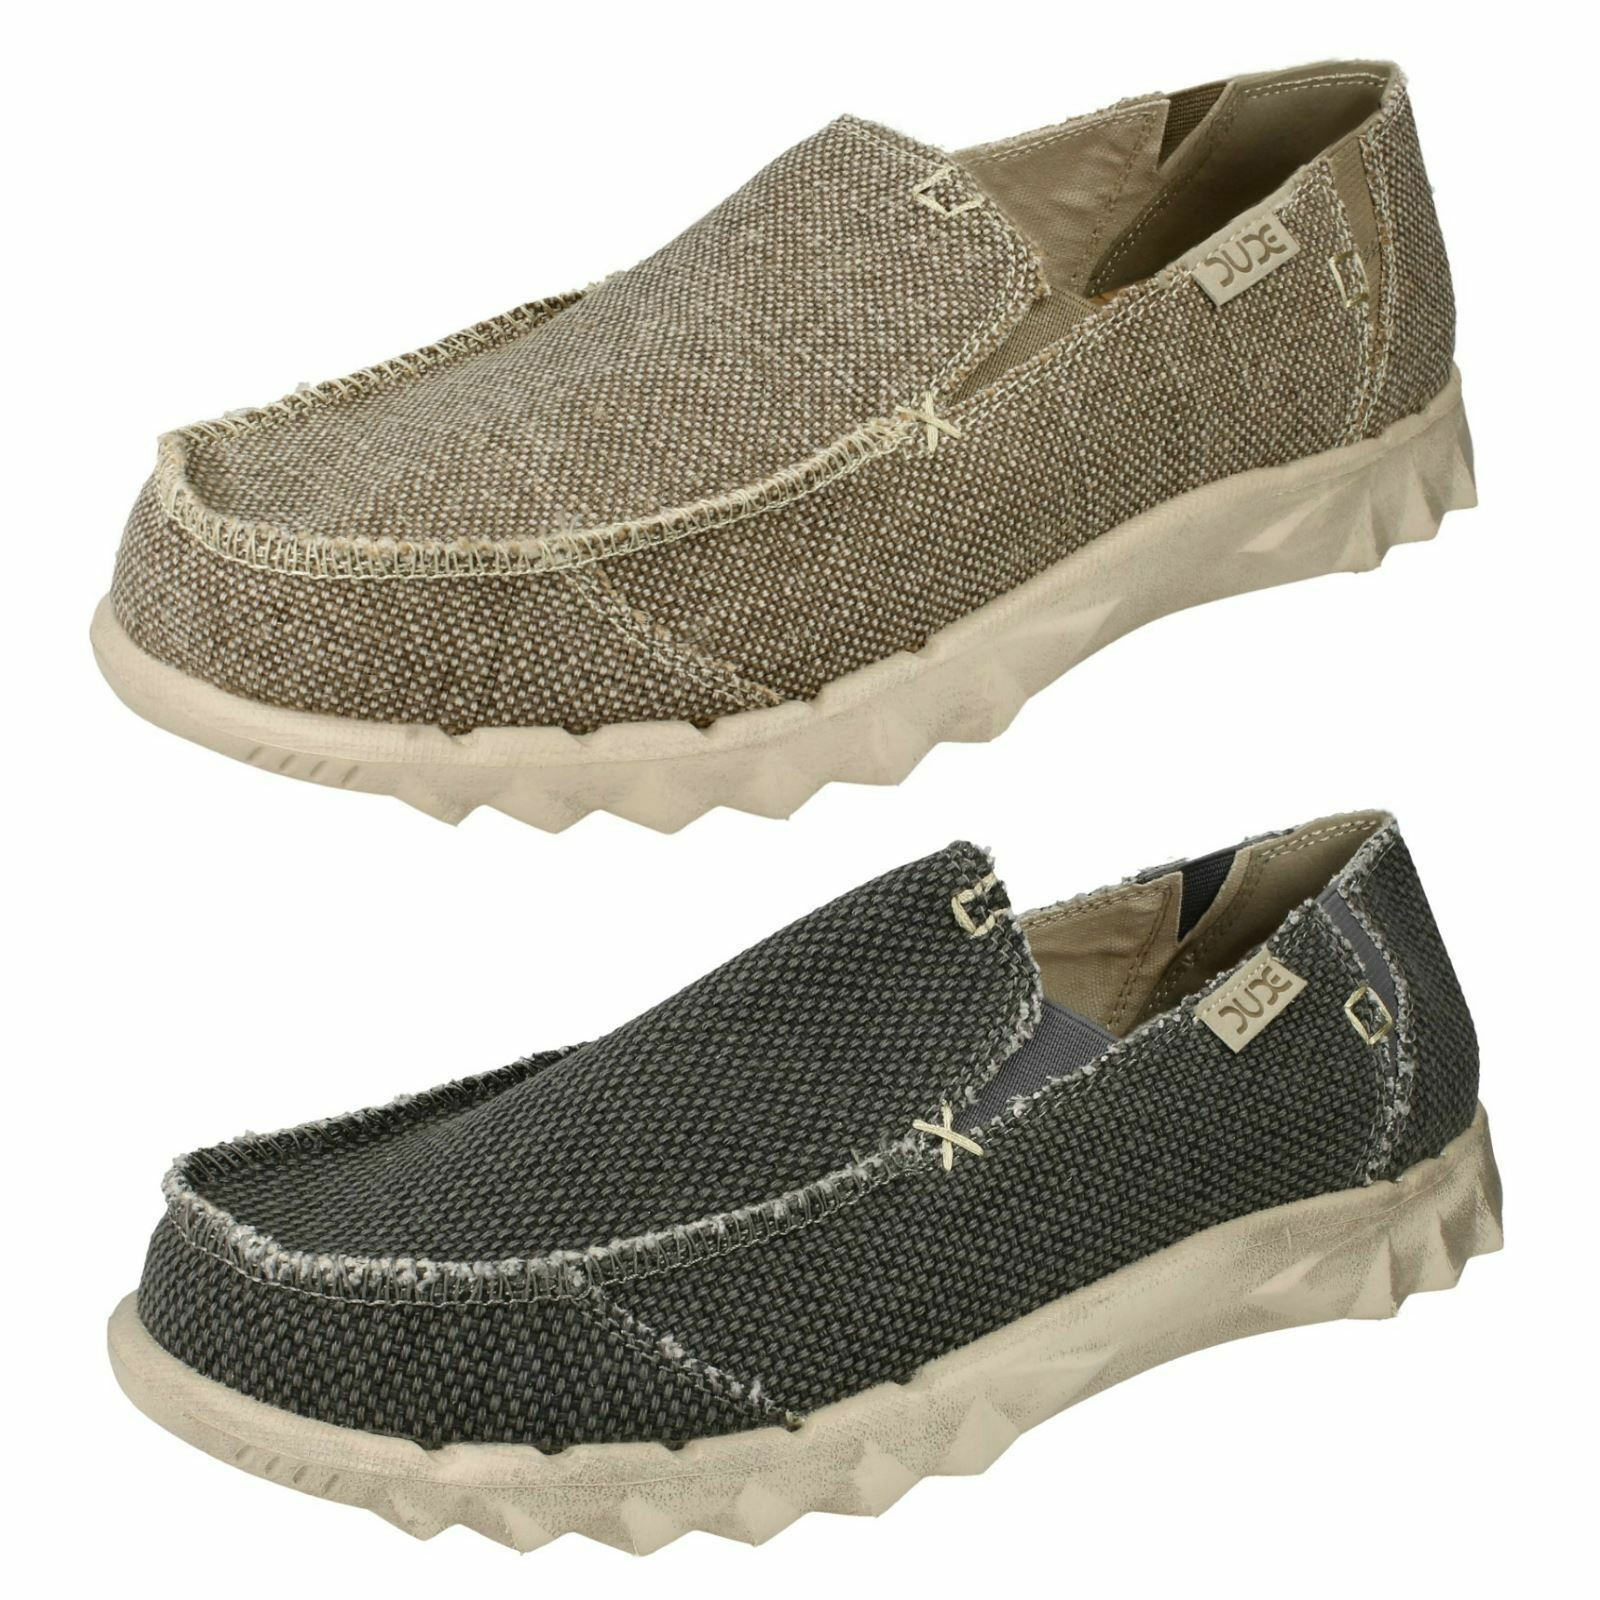 Uomo Intreccio Hey Dude Farty Intreccio Uomo Tela Scarpe Casual Slip-On 415d59